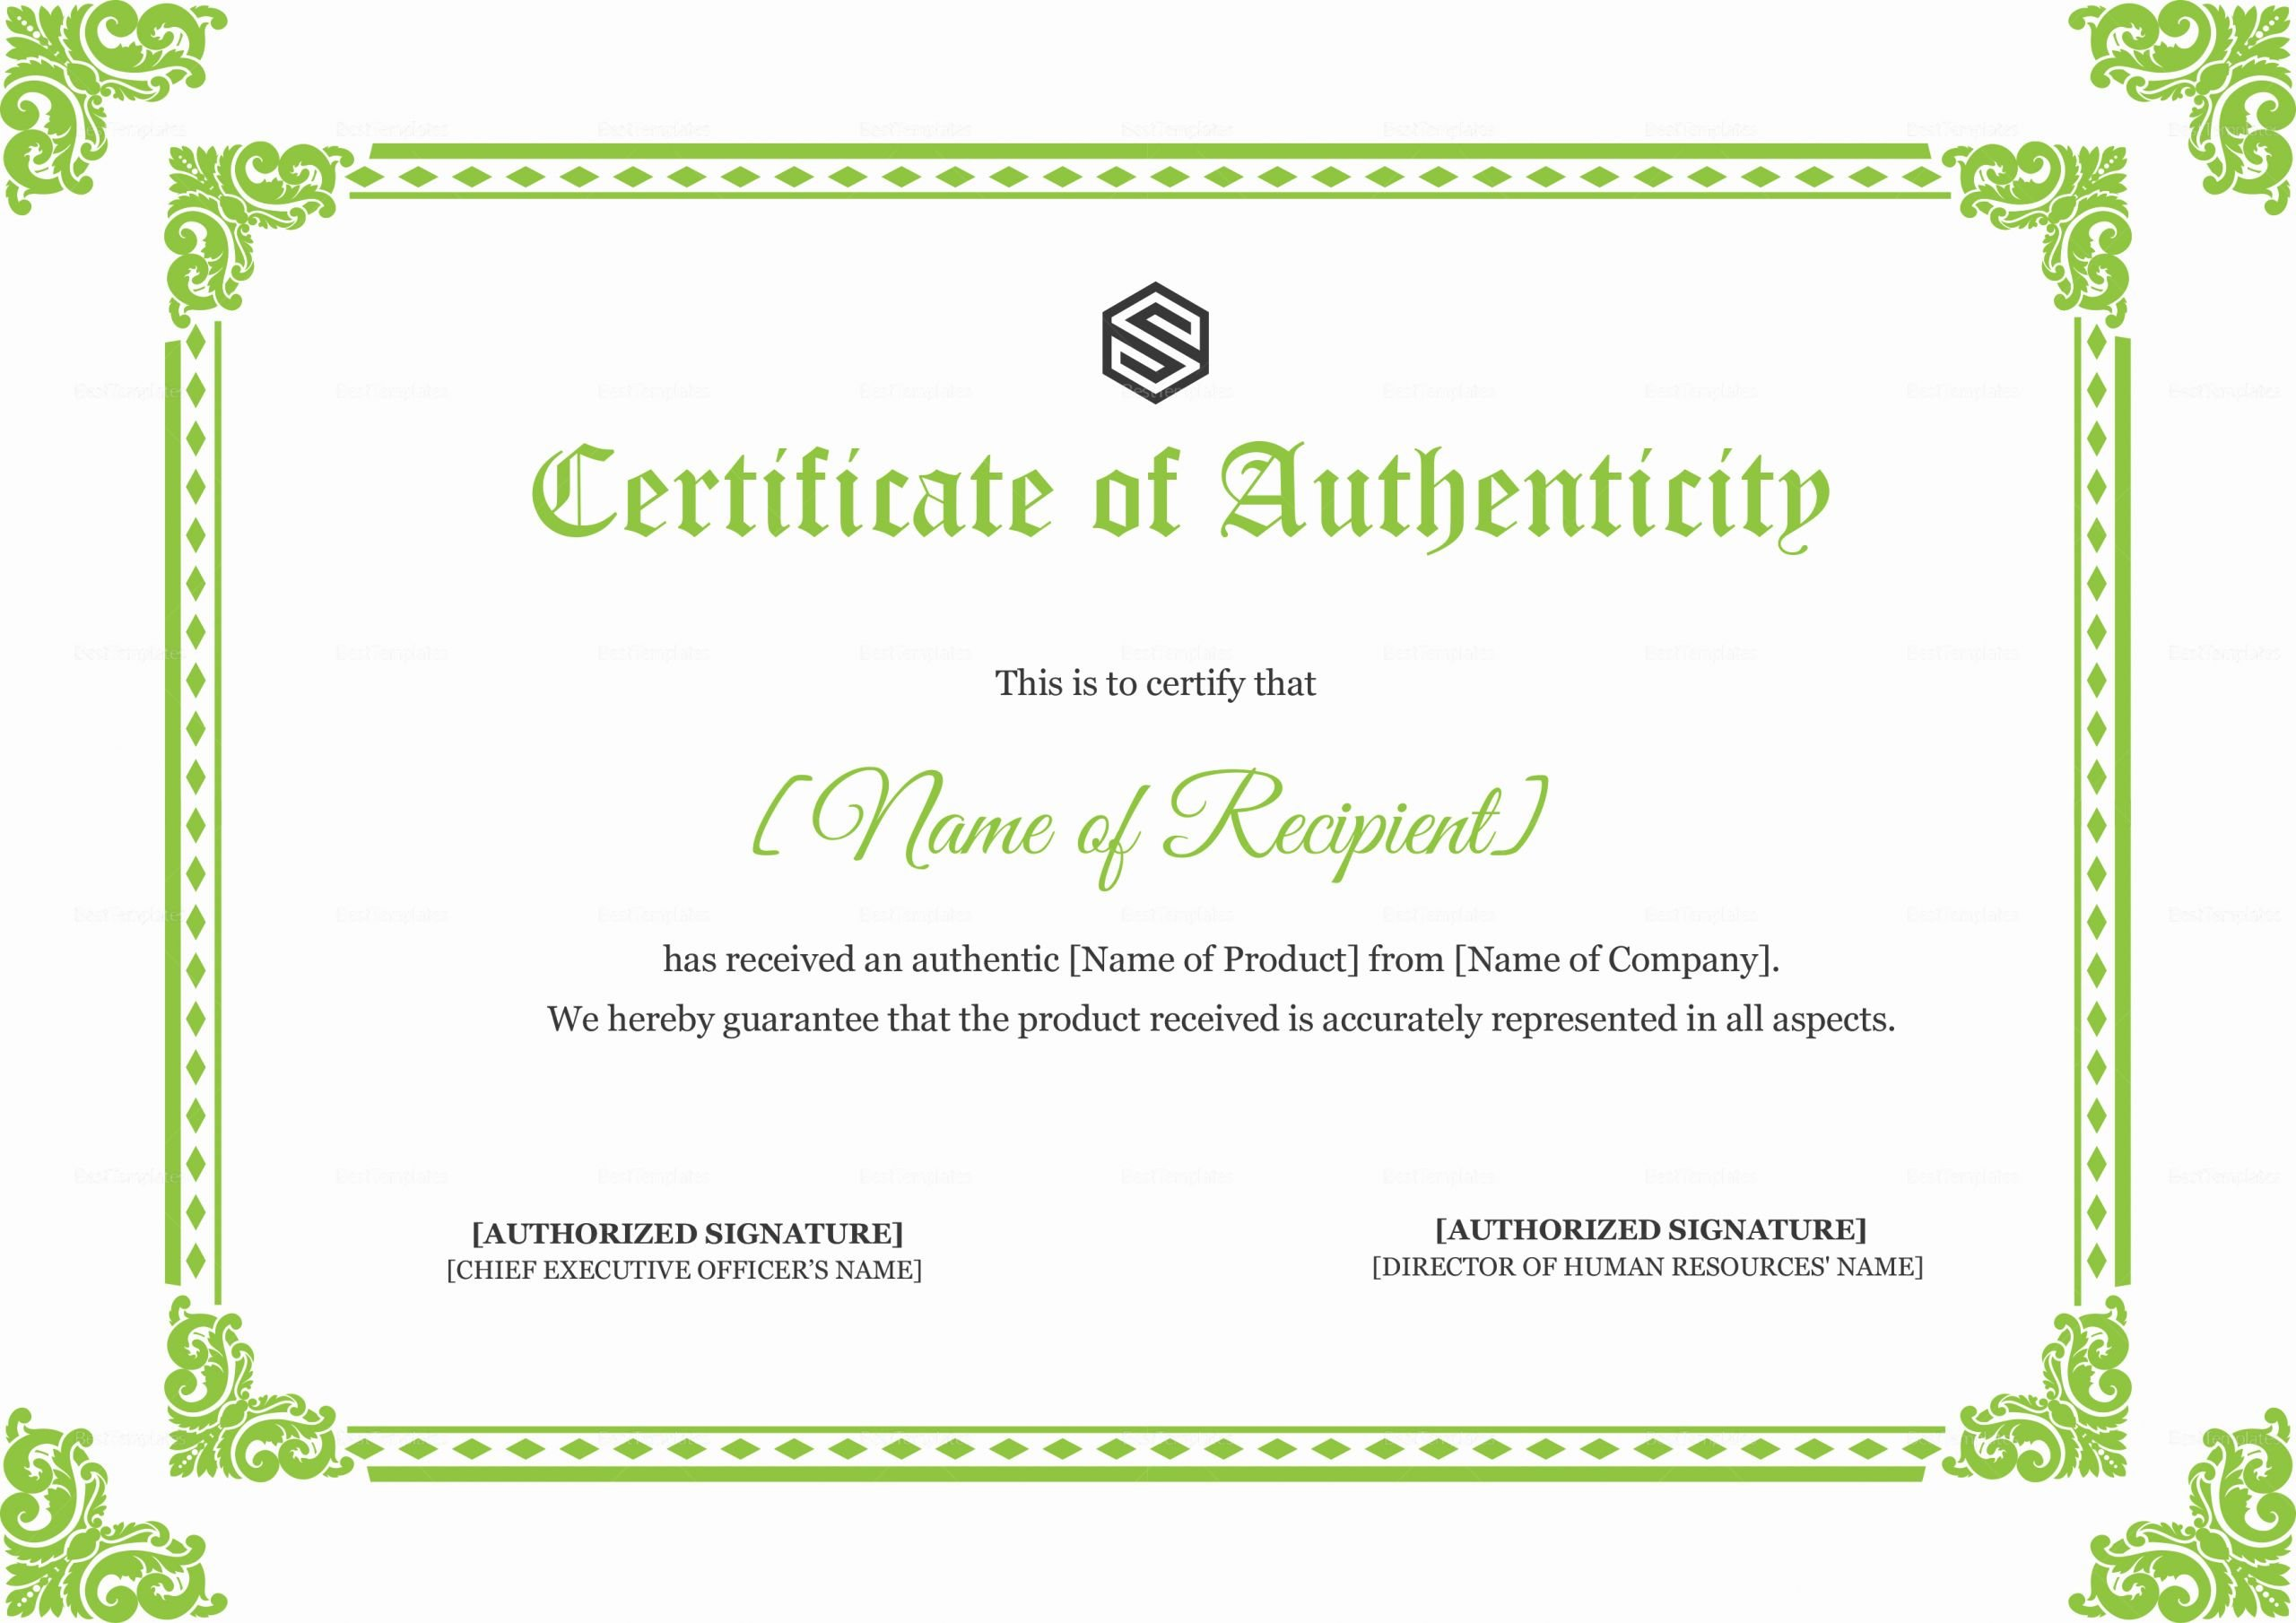 Certificate Of Authenticity Autograph Template Luxury Certificate Of Authenticity Design Template In Psd Word